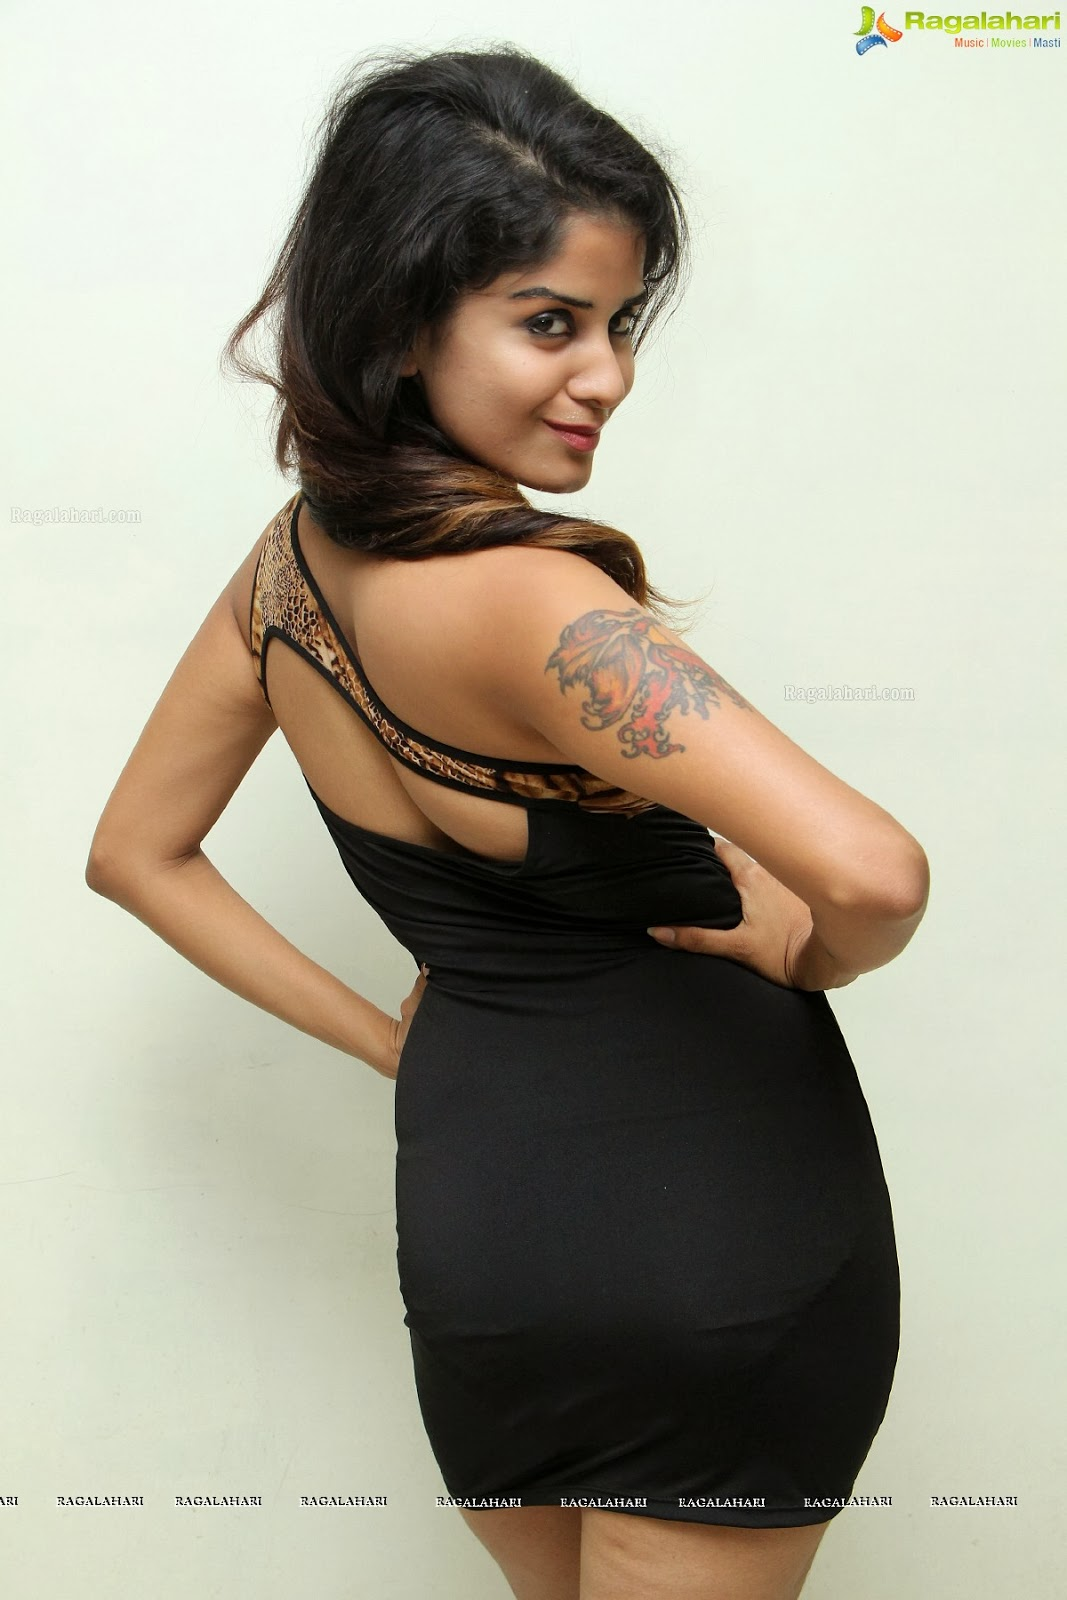 Hot Model Anukriti Govind Sharma